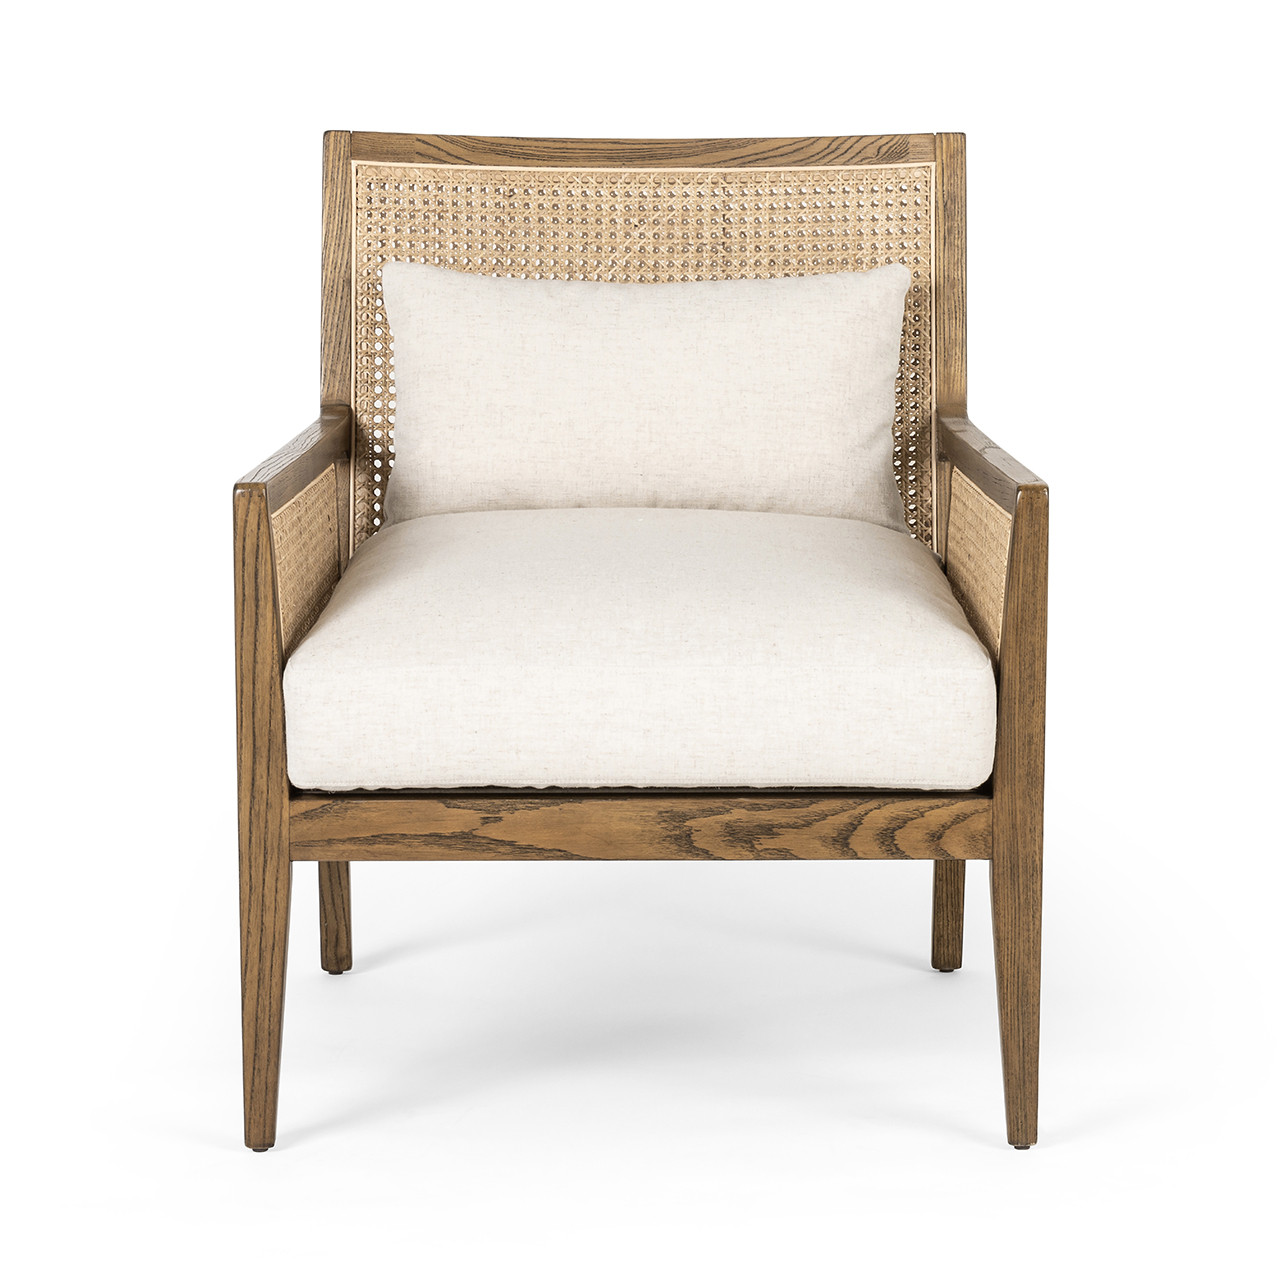 Adelaide Cane Lounge Chair